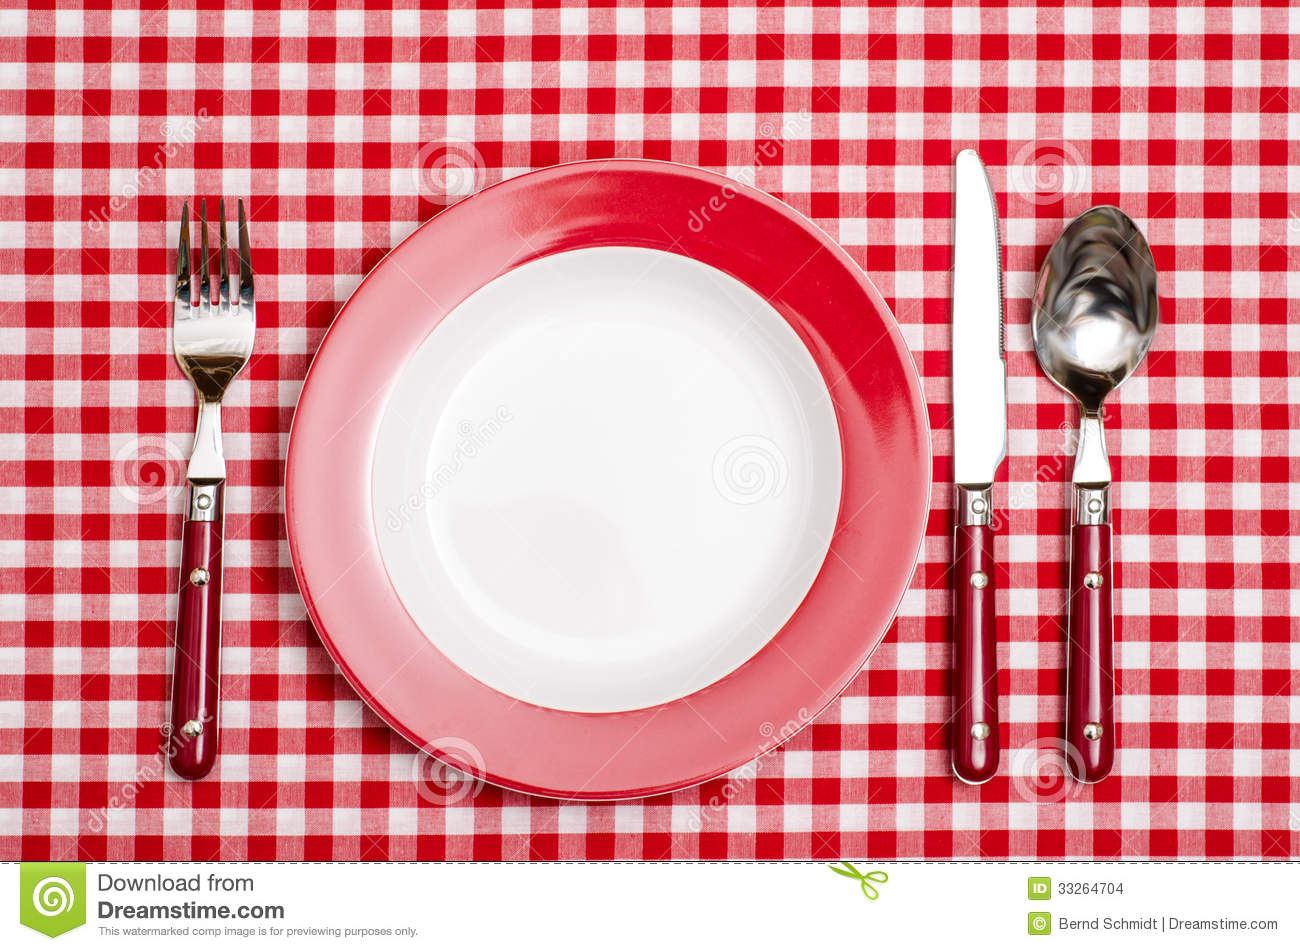 Red place setting with red checkered table cloth in a restaurant.